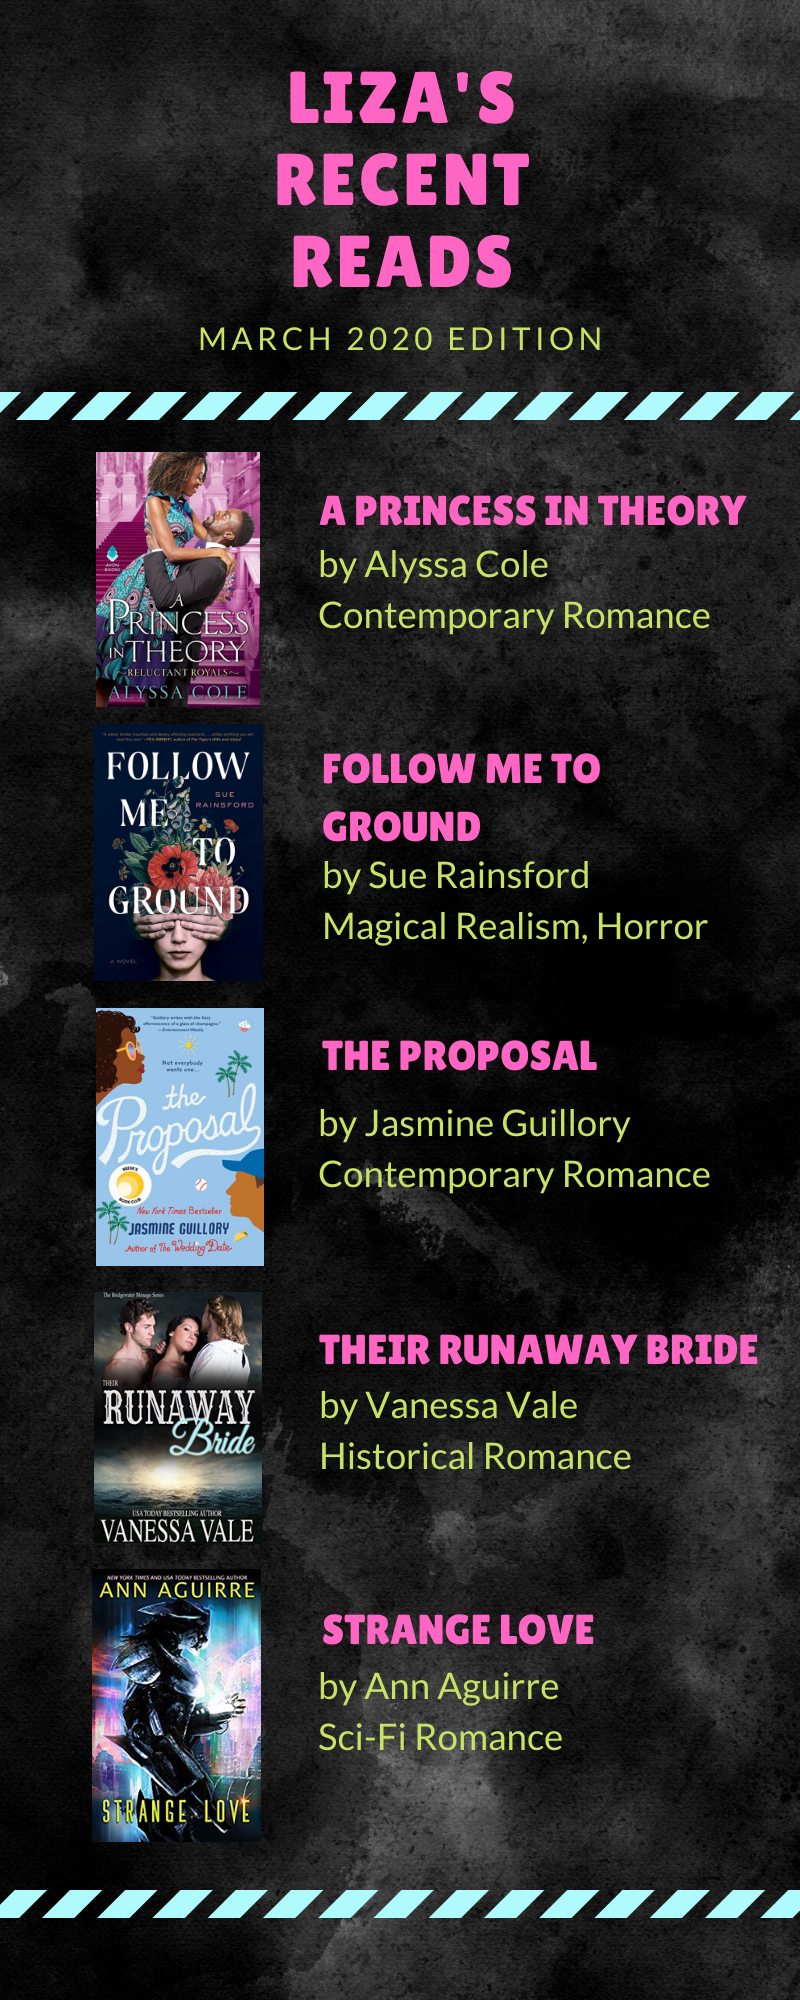 Liza's Recent Reads March 2020